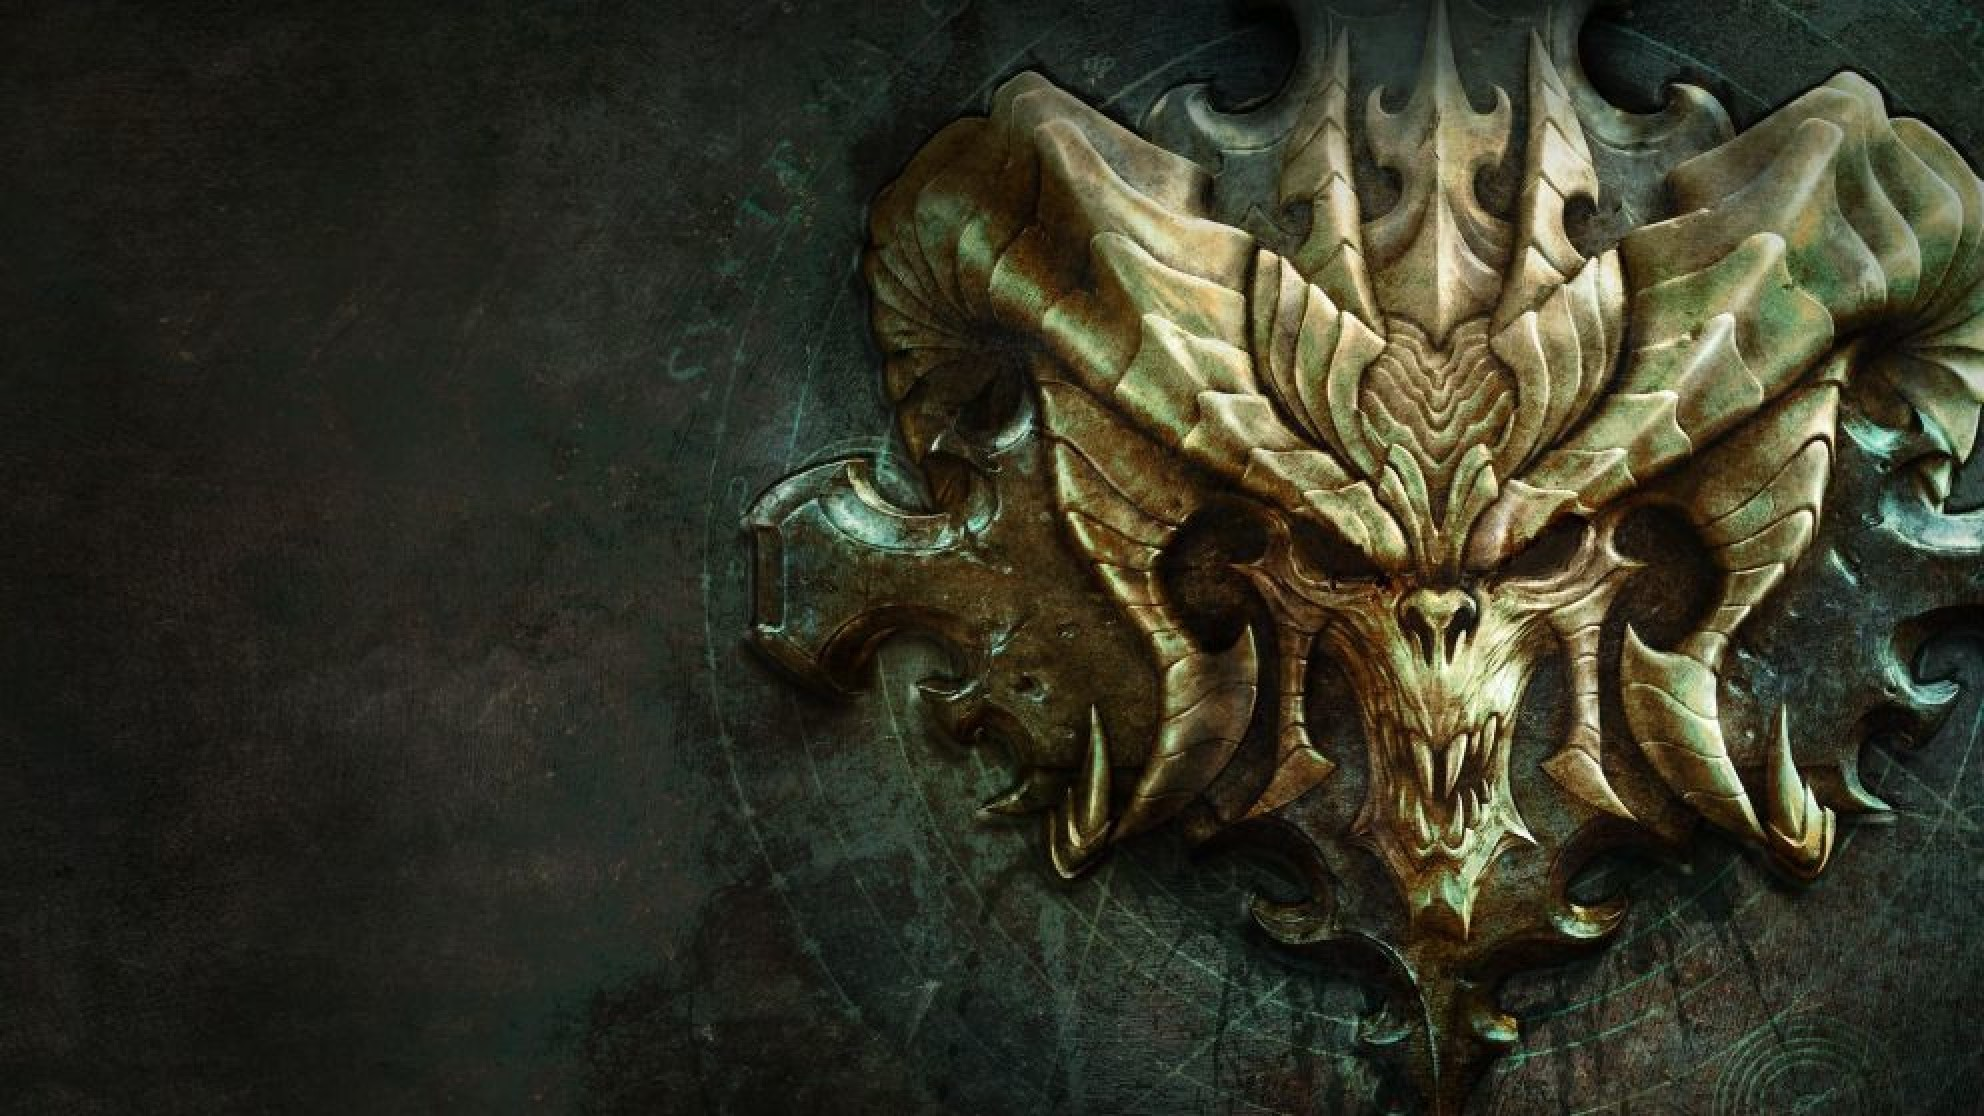 Upcoming Diablo projects possibly behind schedule